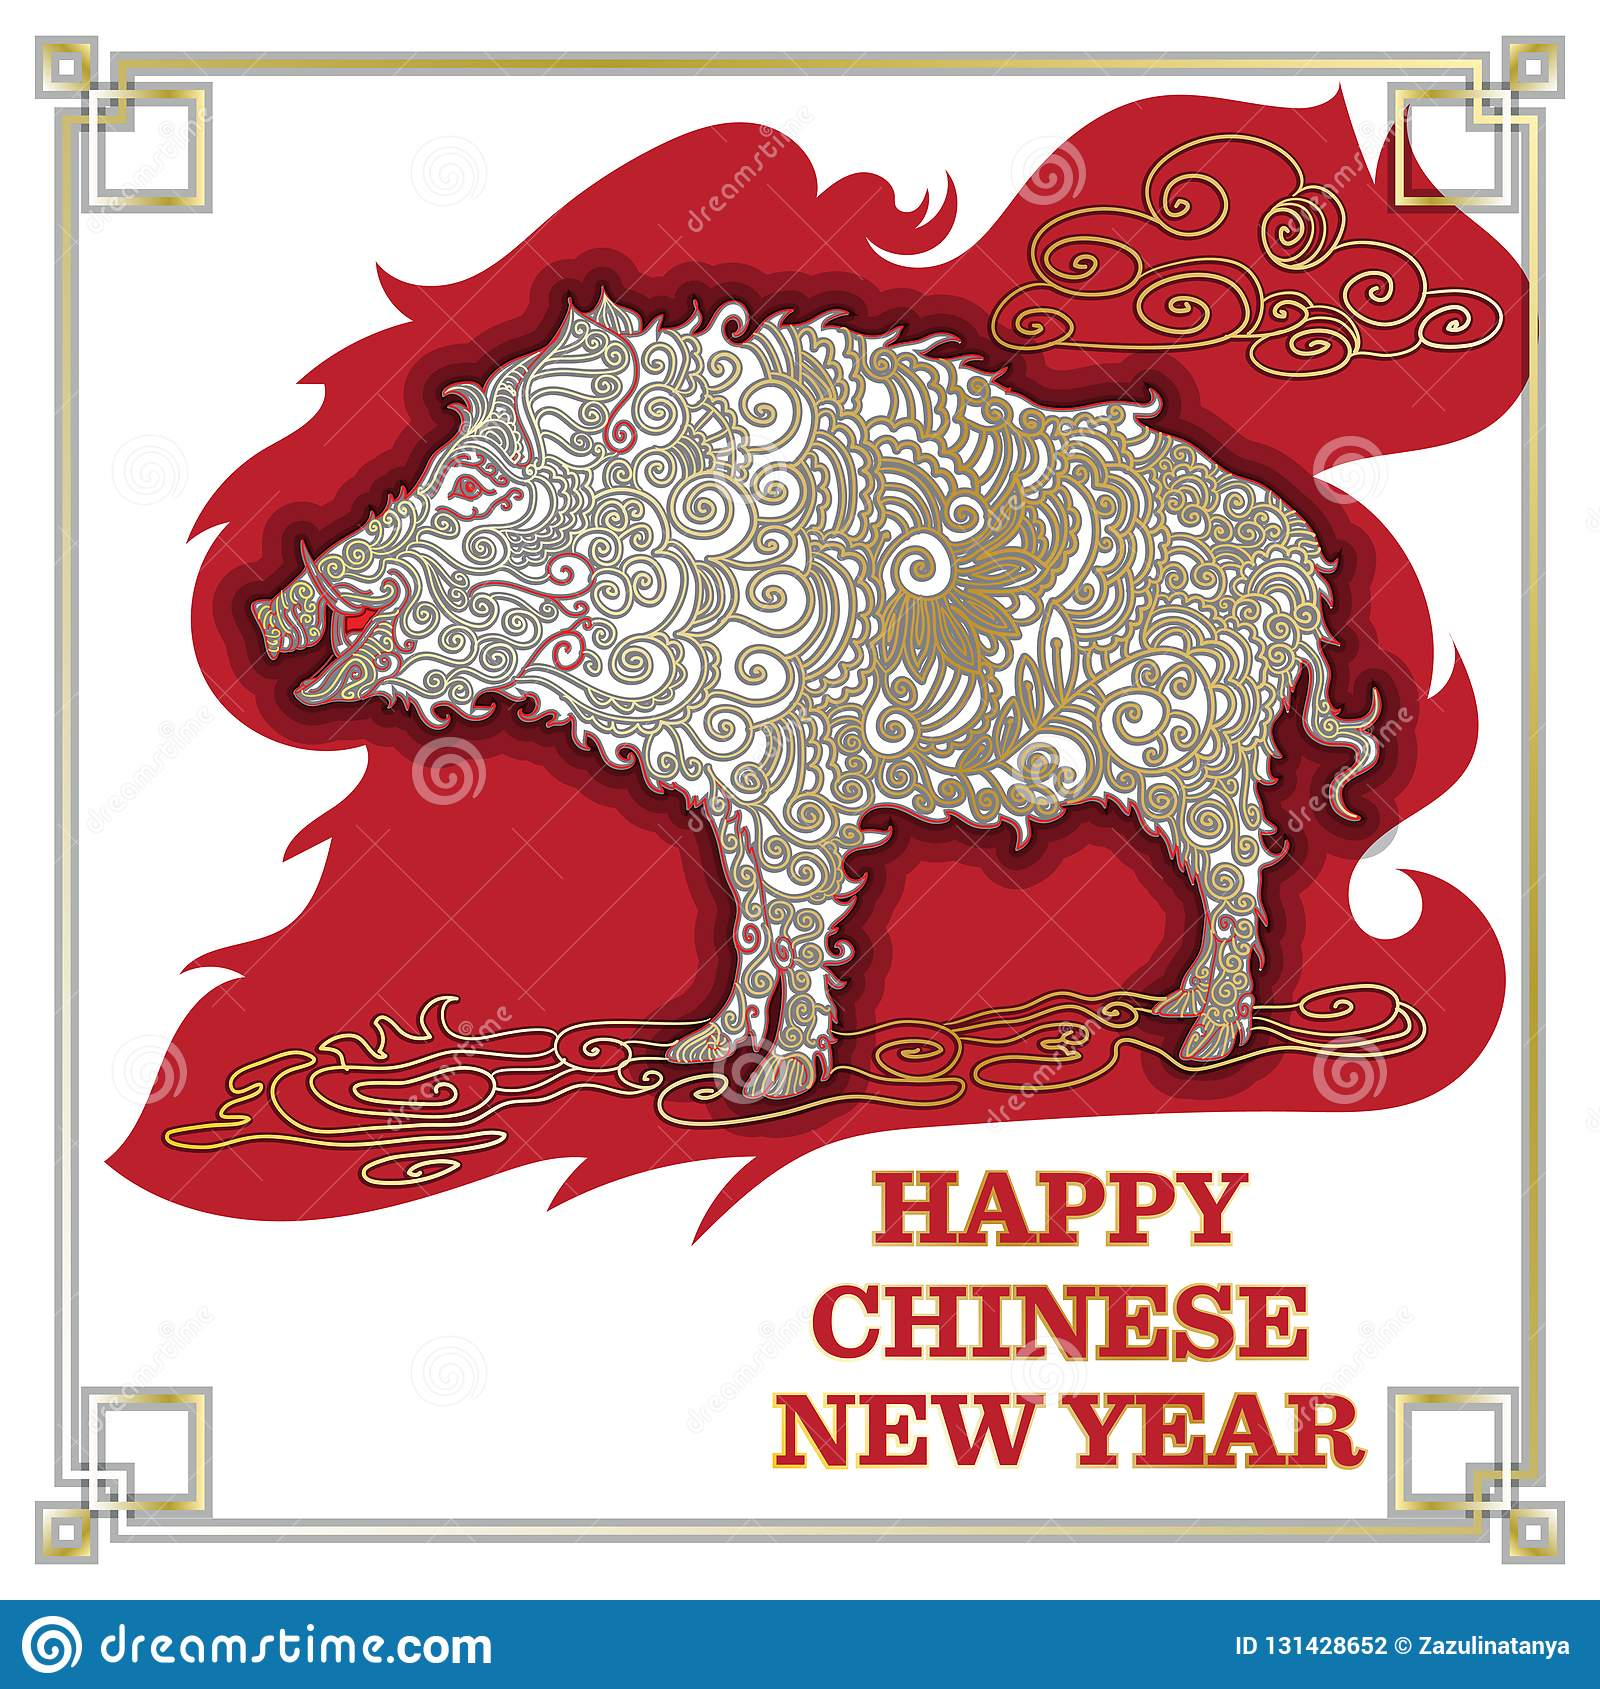 Chinese New Year 2019. Zodiac Pig. Happy New Year card, pattern. Vector illustration. Chinese traditional Design, golden